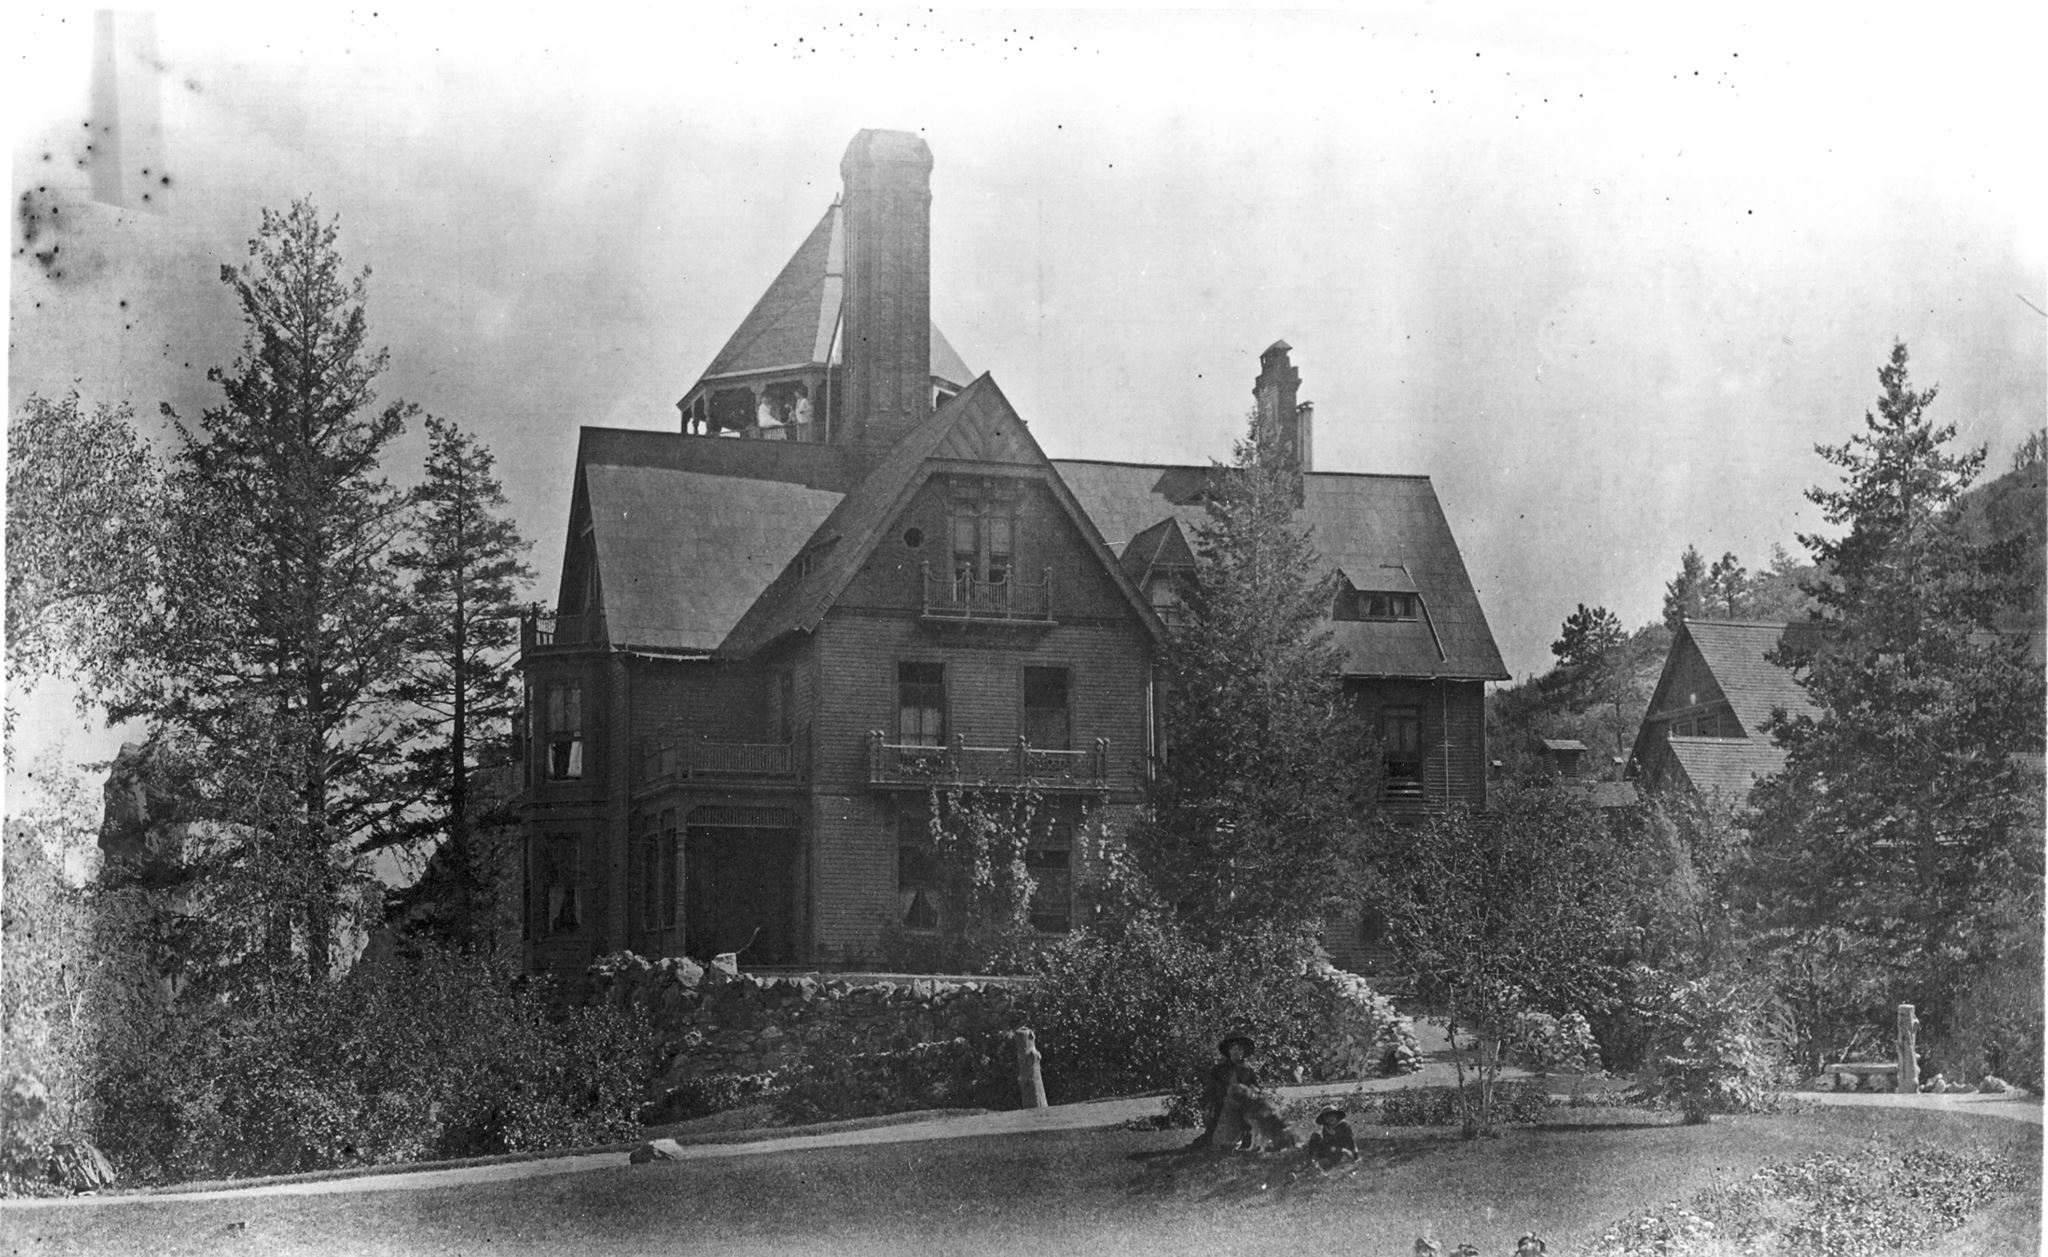 1880s photo of the original house that would become Glen Eyrie castle